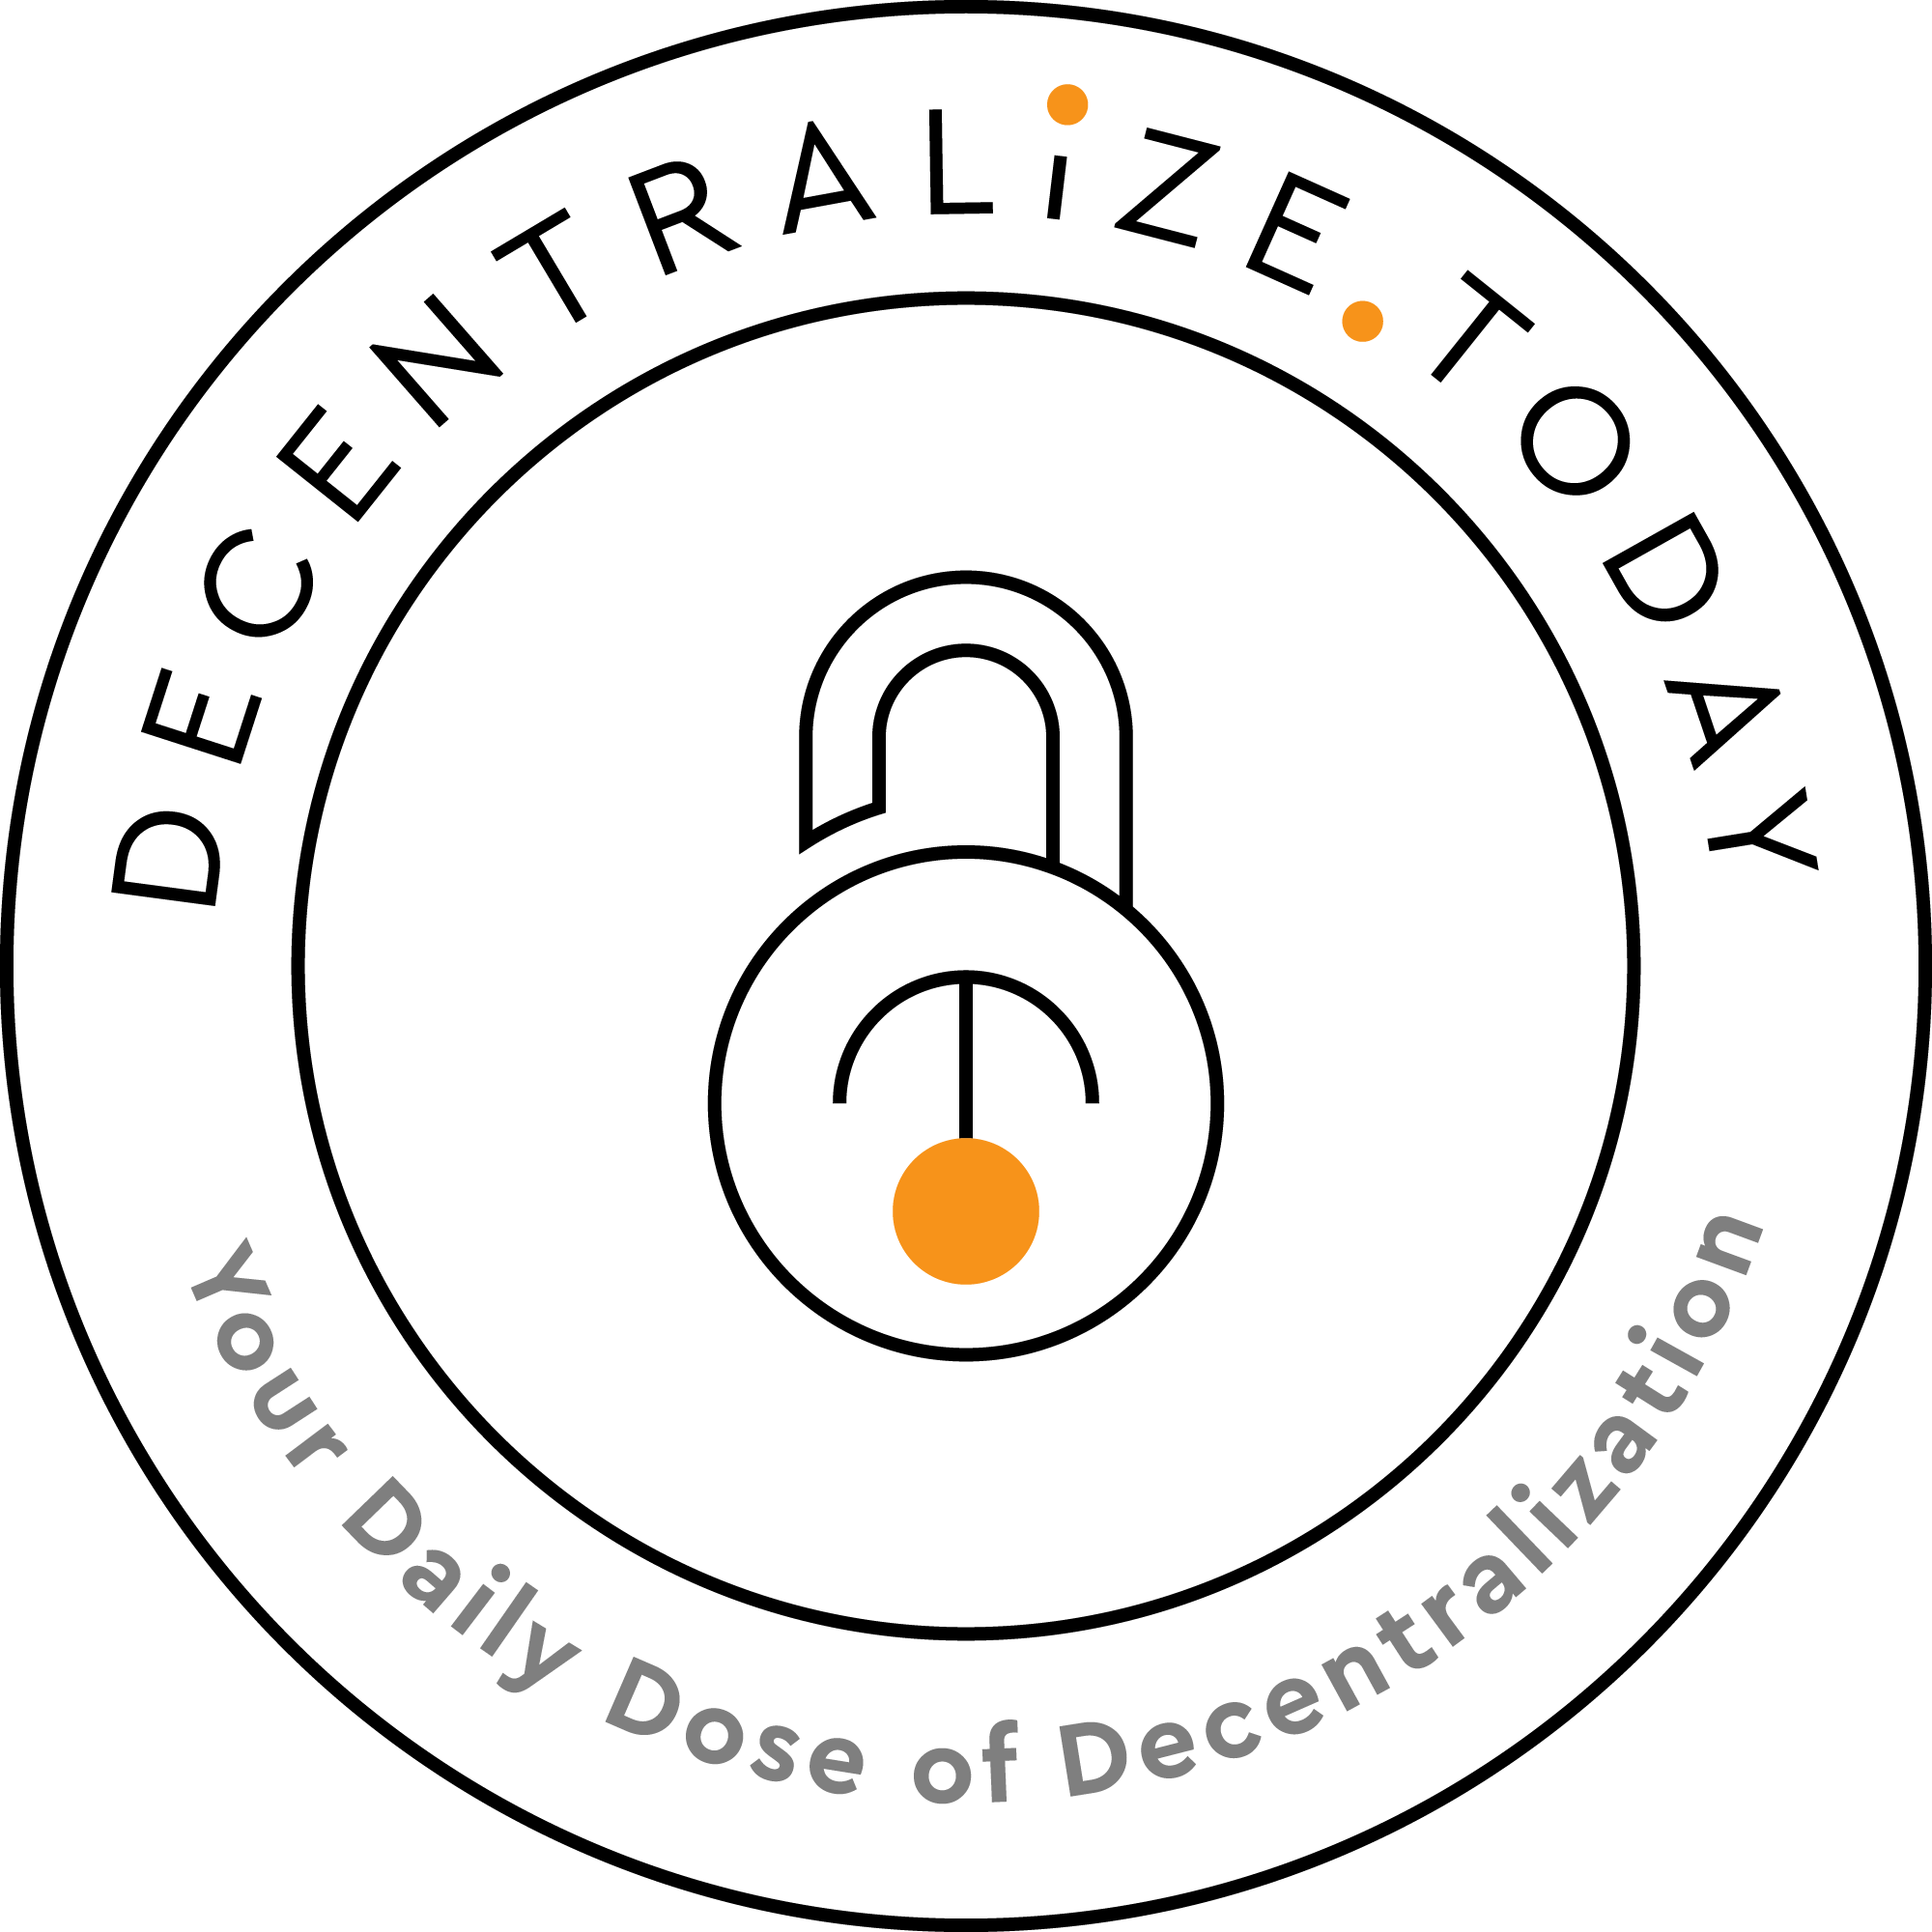 Decentralize.today